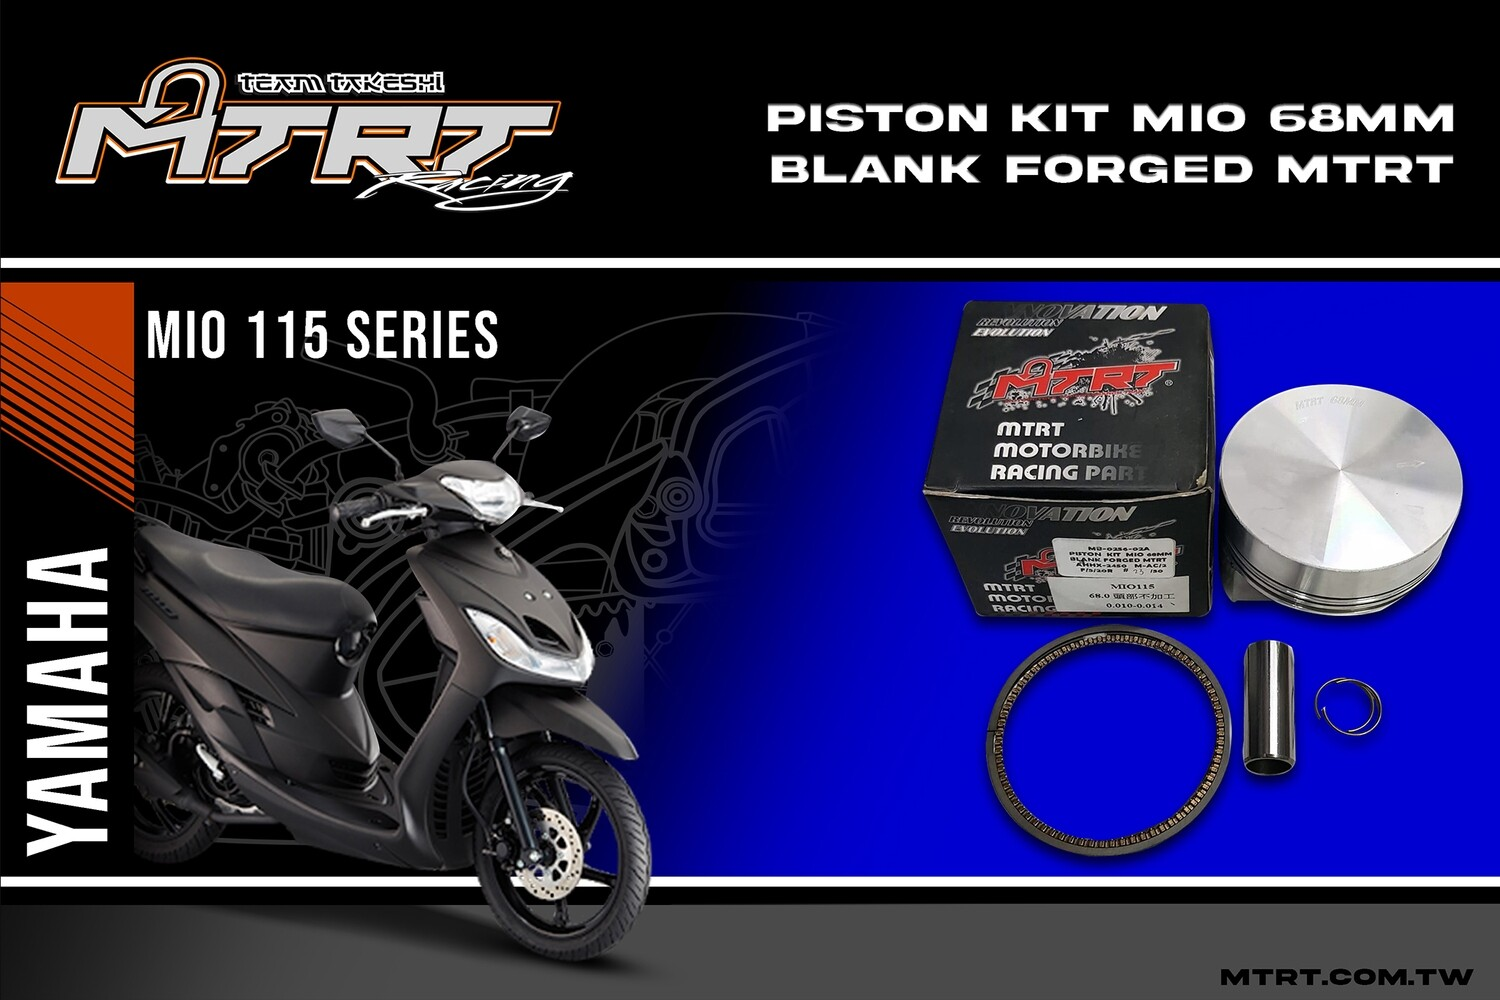 PISTON KIT 68MM BLANK FORGED